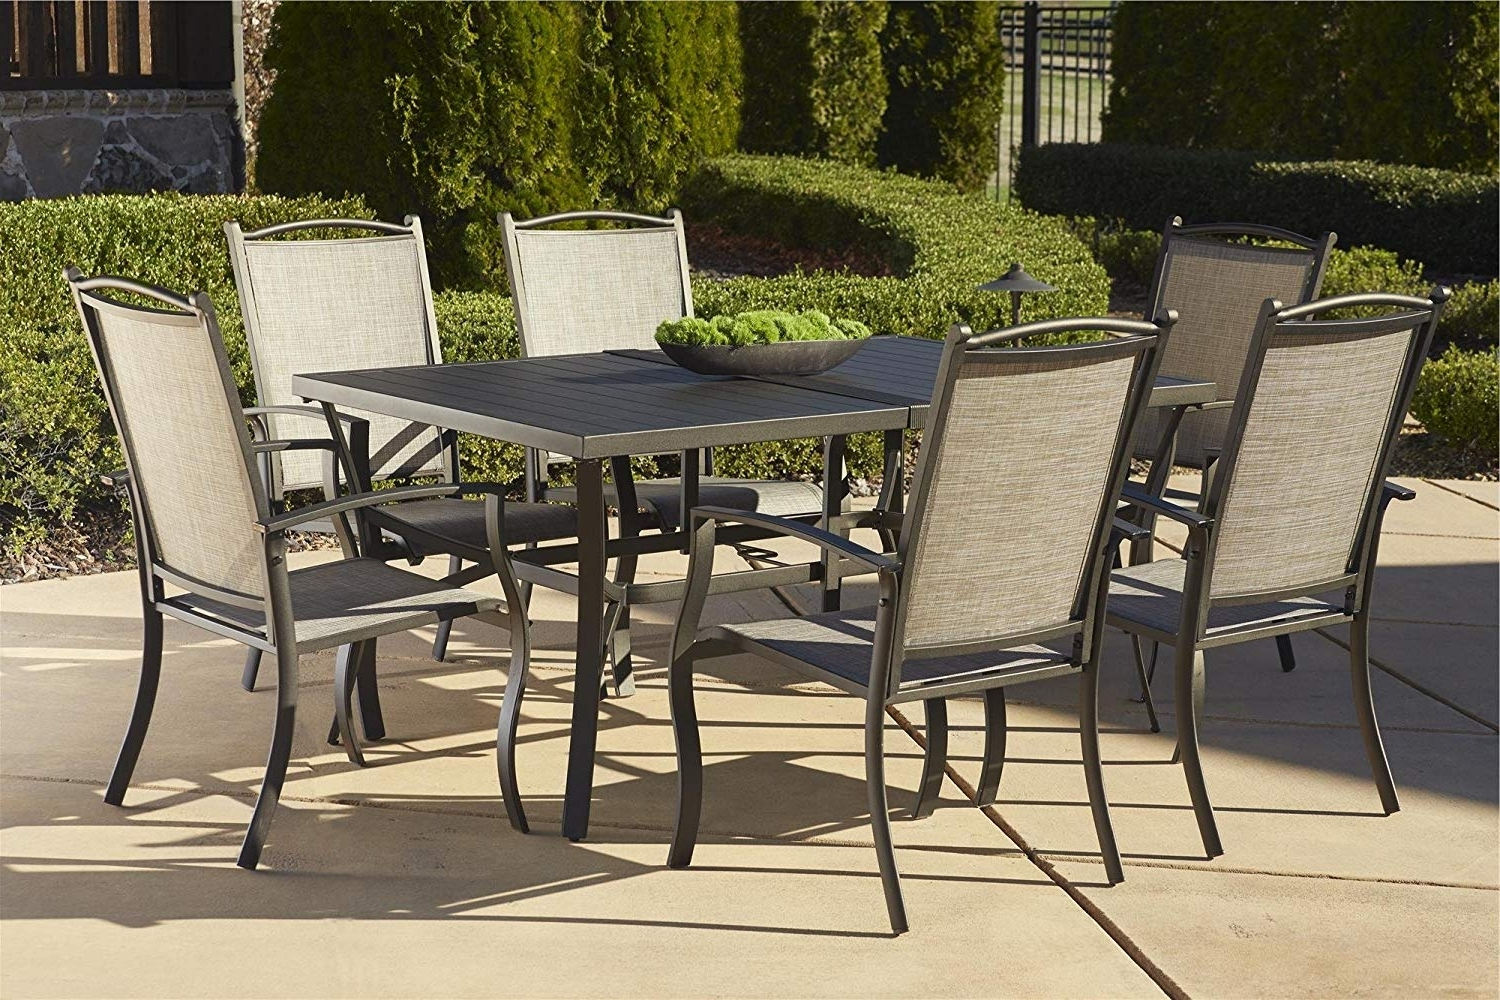 Amazon: Cosco Outdoor 7 Piece Serene Ridge Aluminum Patio Dining Intended For 2018 Patio Conversation Dining Sets (View 1 of 15)